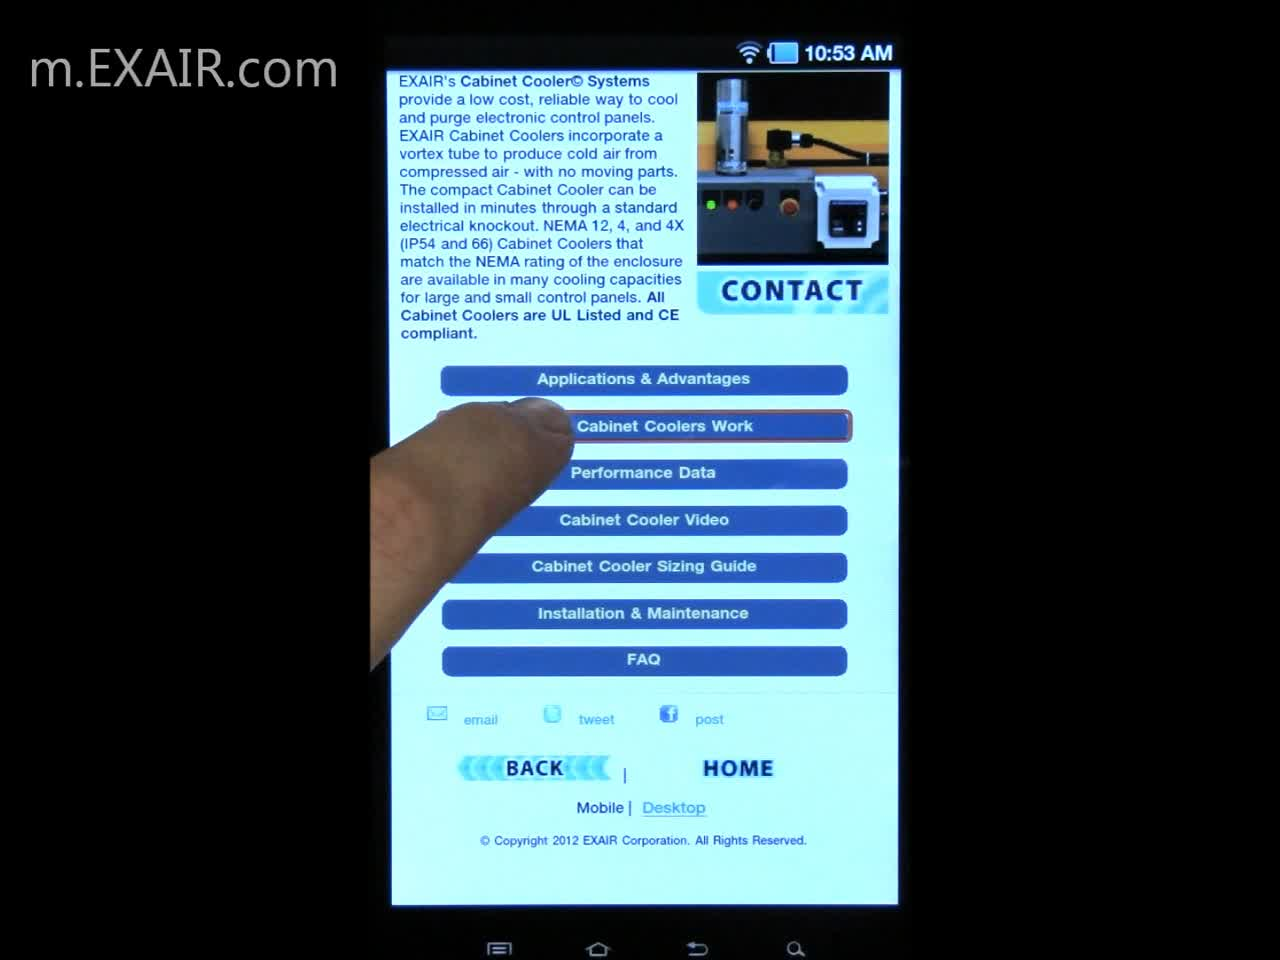 EXAIR Mobile Introduction – BF 6-29-12